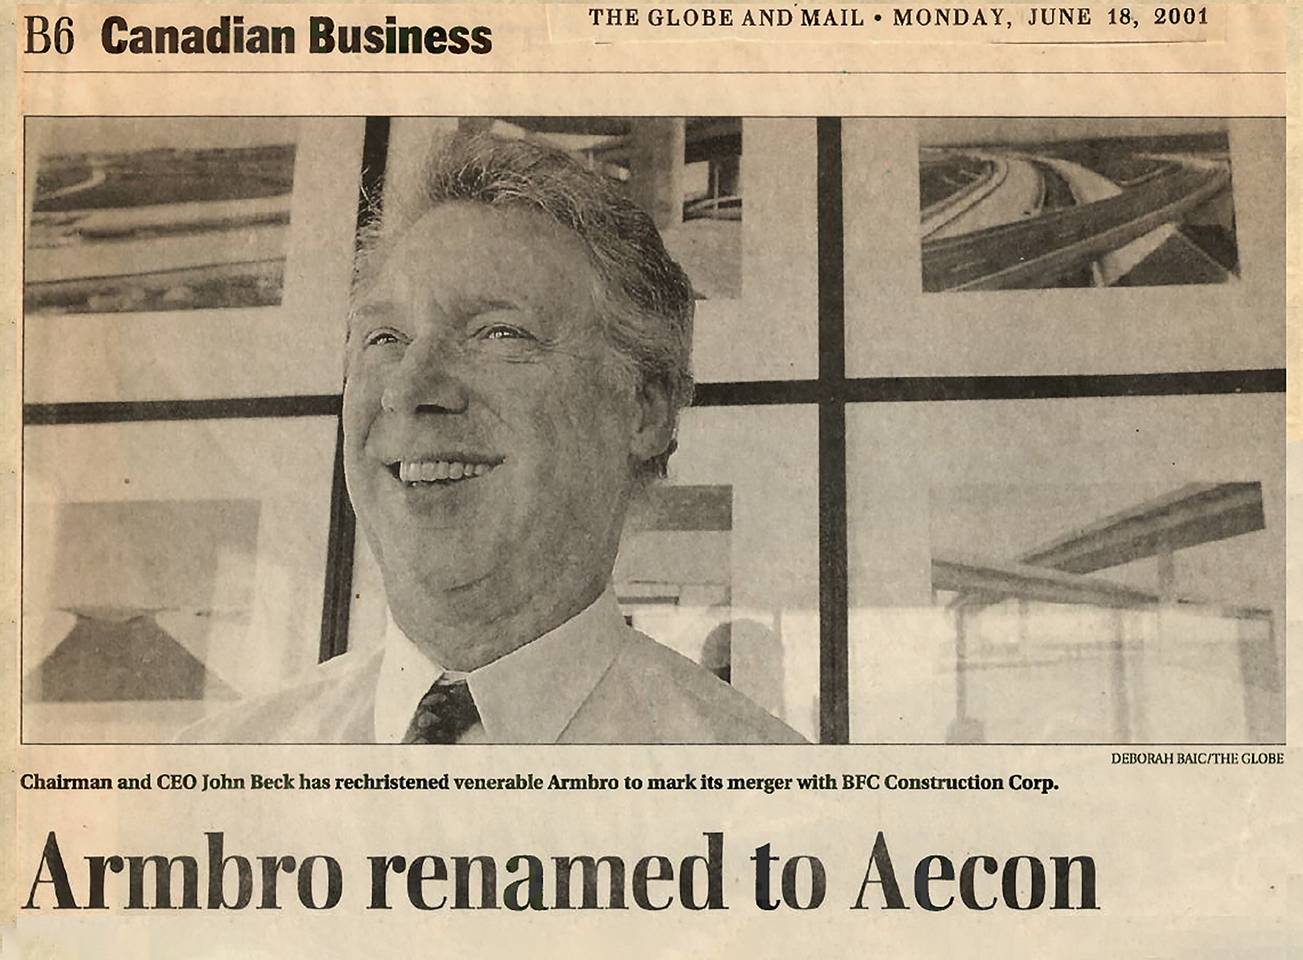 Armbro renamed to Aecon newspaper